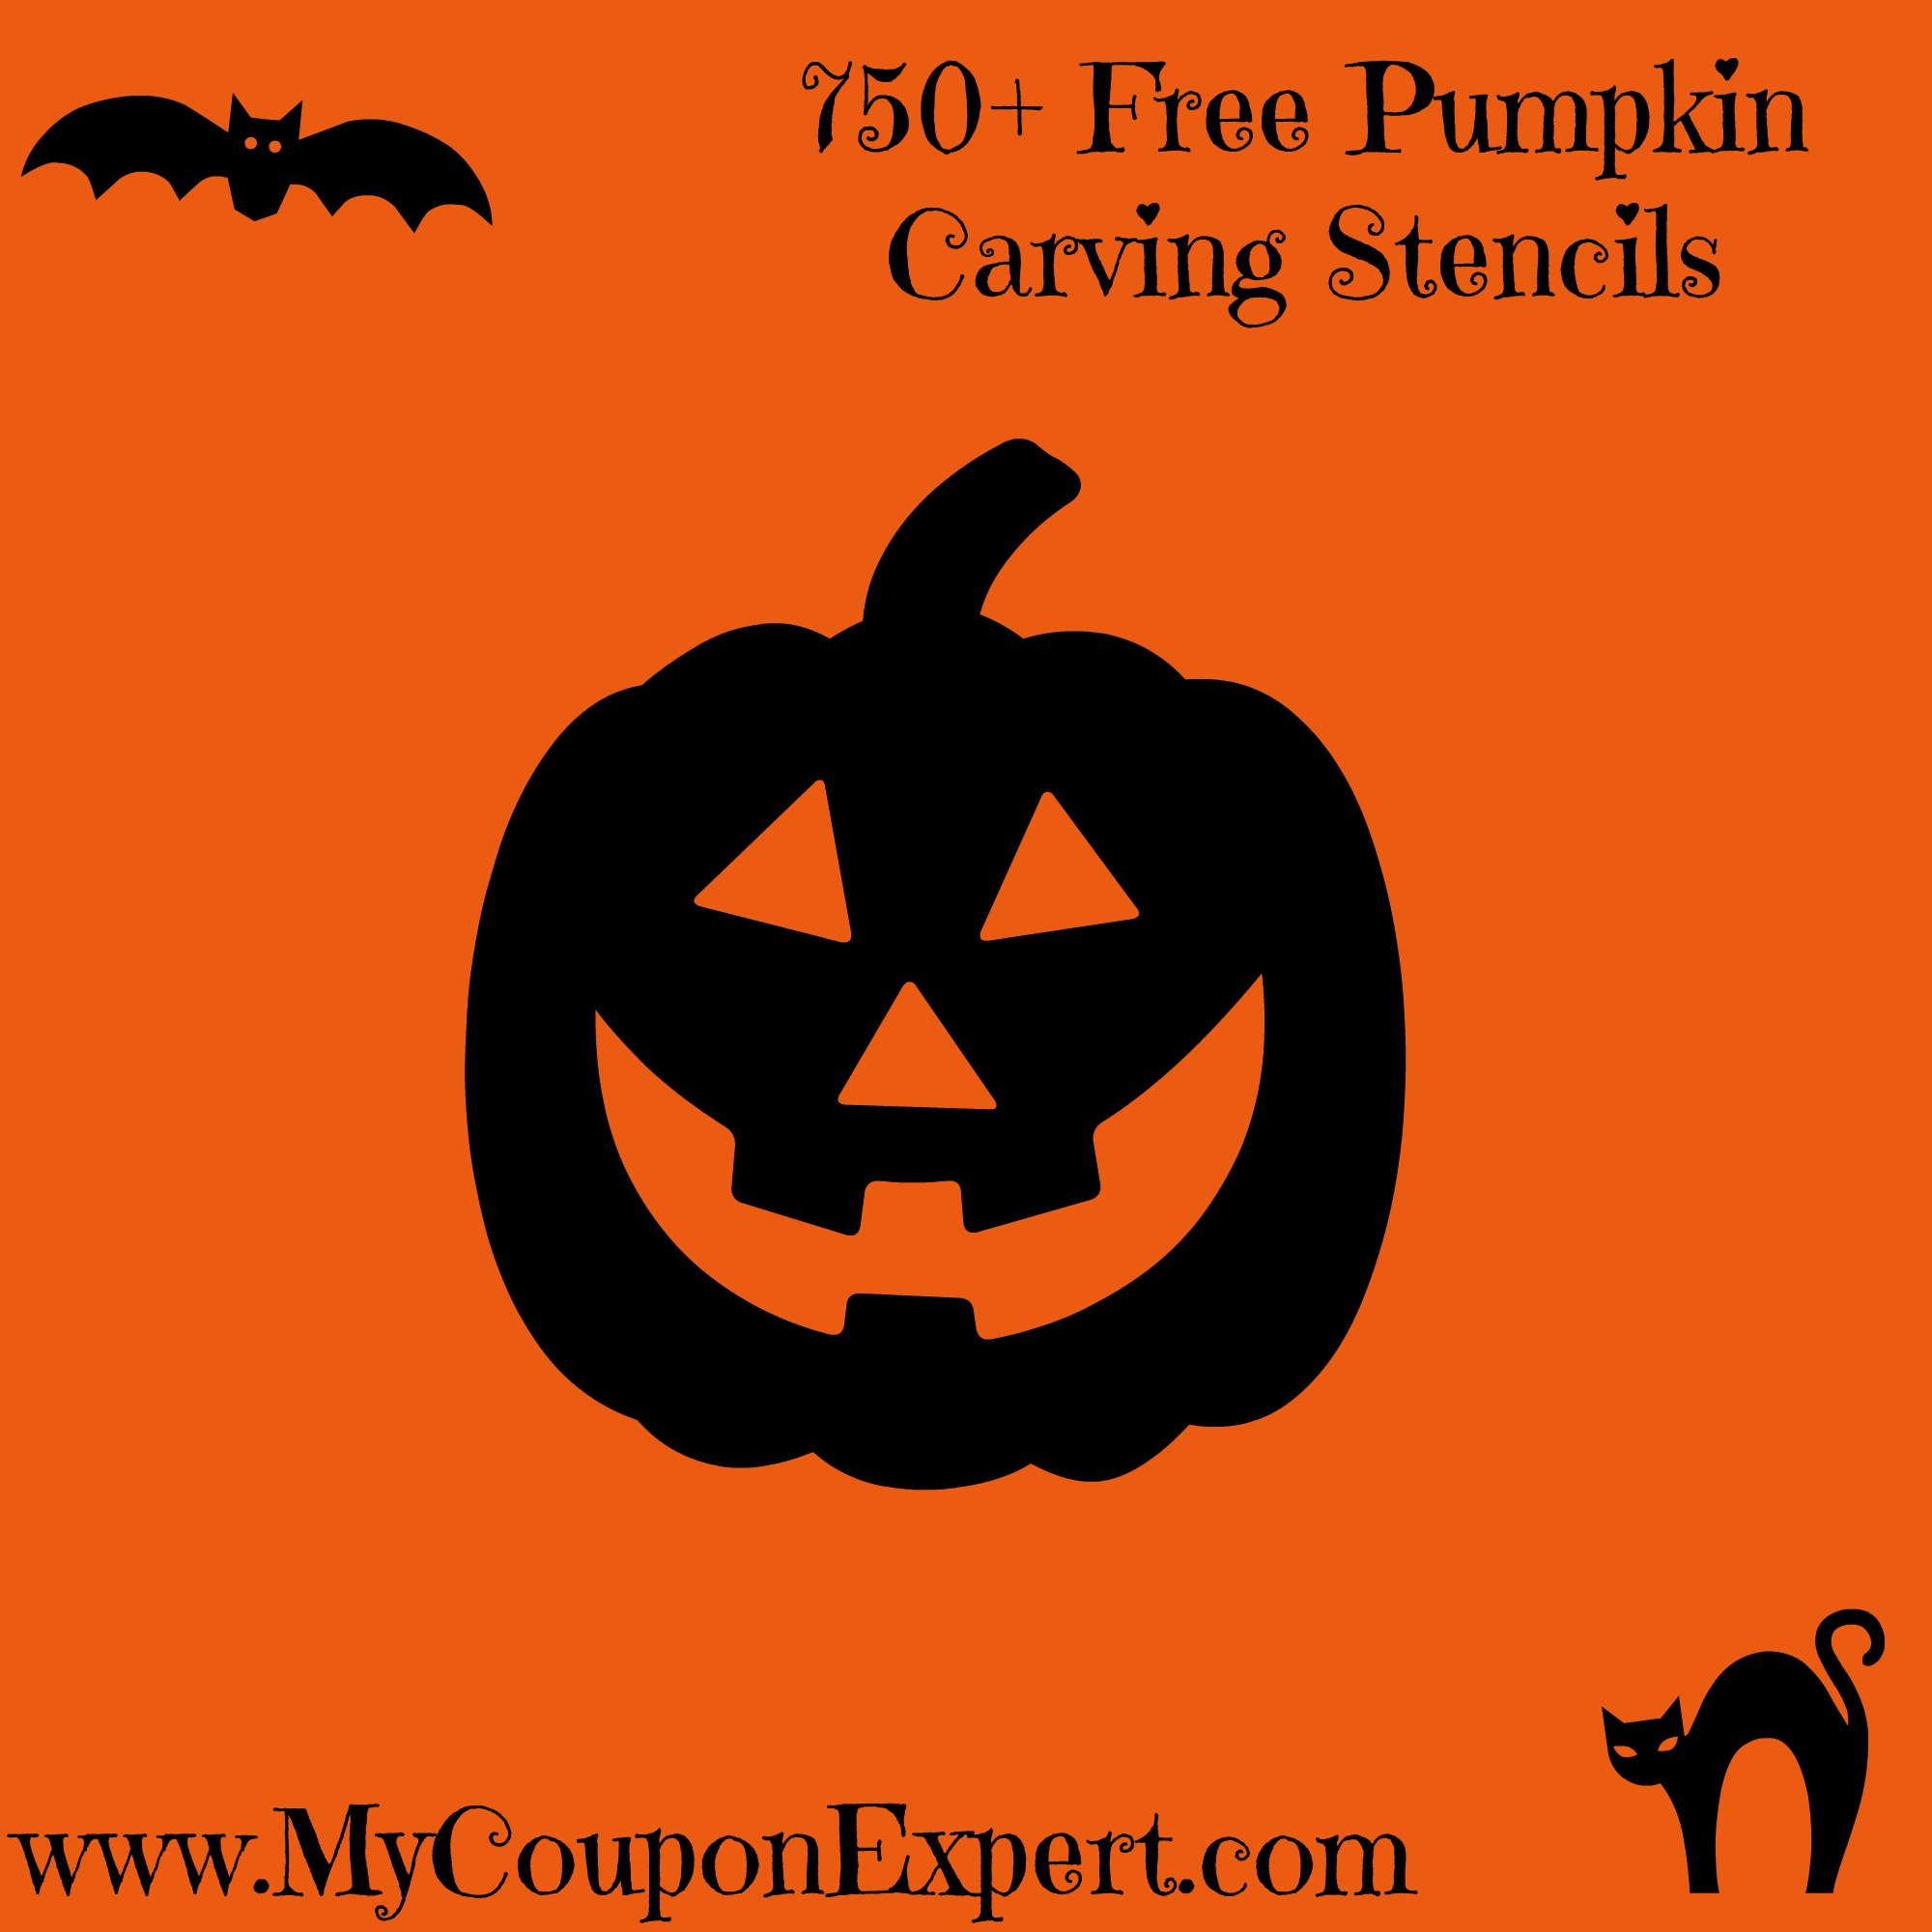 015 Free Pumpkin Templates Printable Template Ideas Carving - Pumpkin Carving Patterns Free Printable